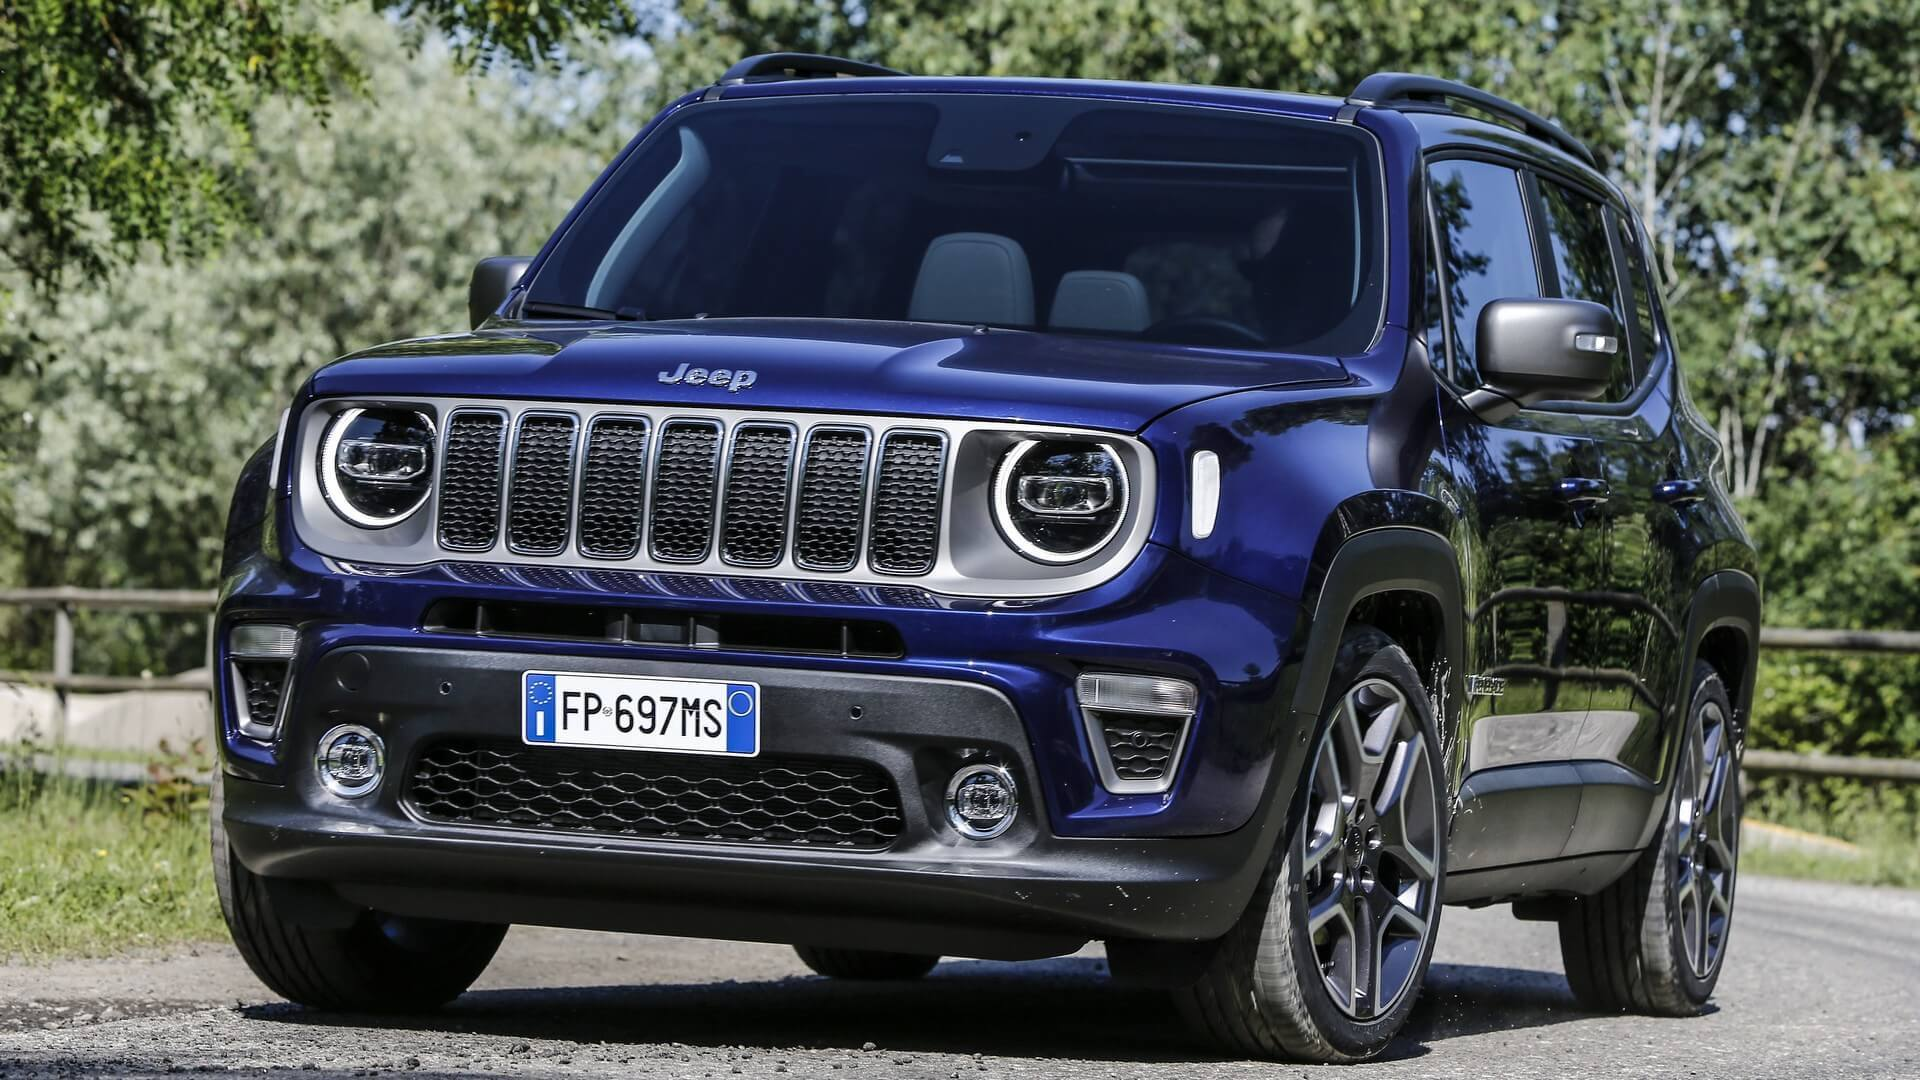 2019 jeep renegade soldiers on with diesel power in europe autoevolution. Black Bedroom Furniture Sets. Home Design Ideas